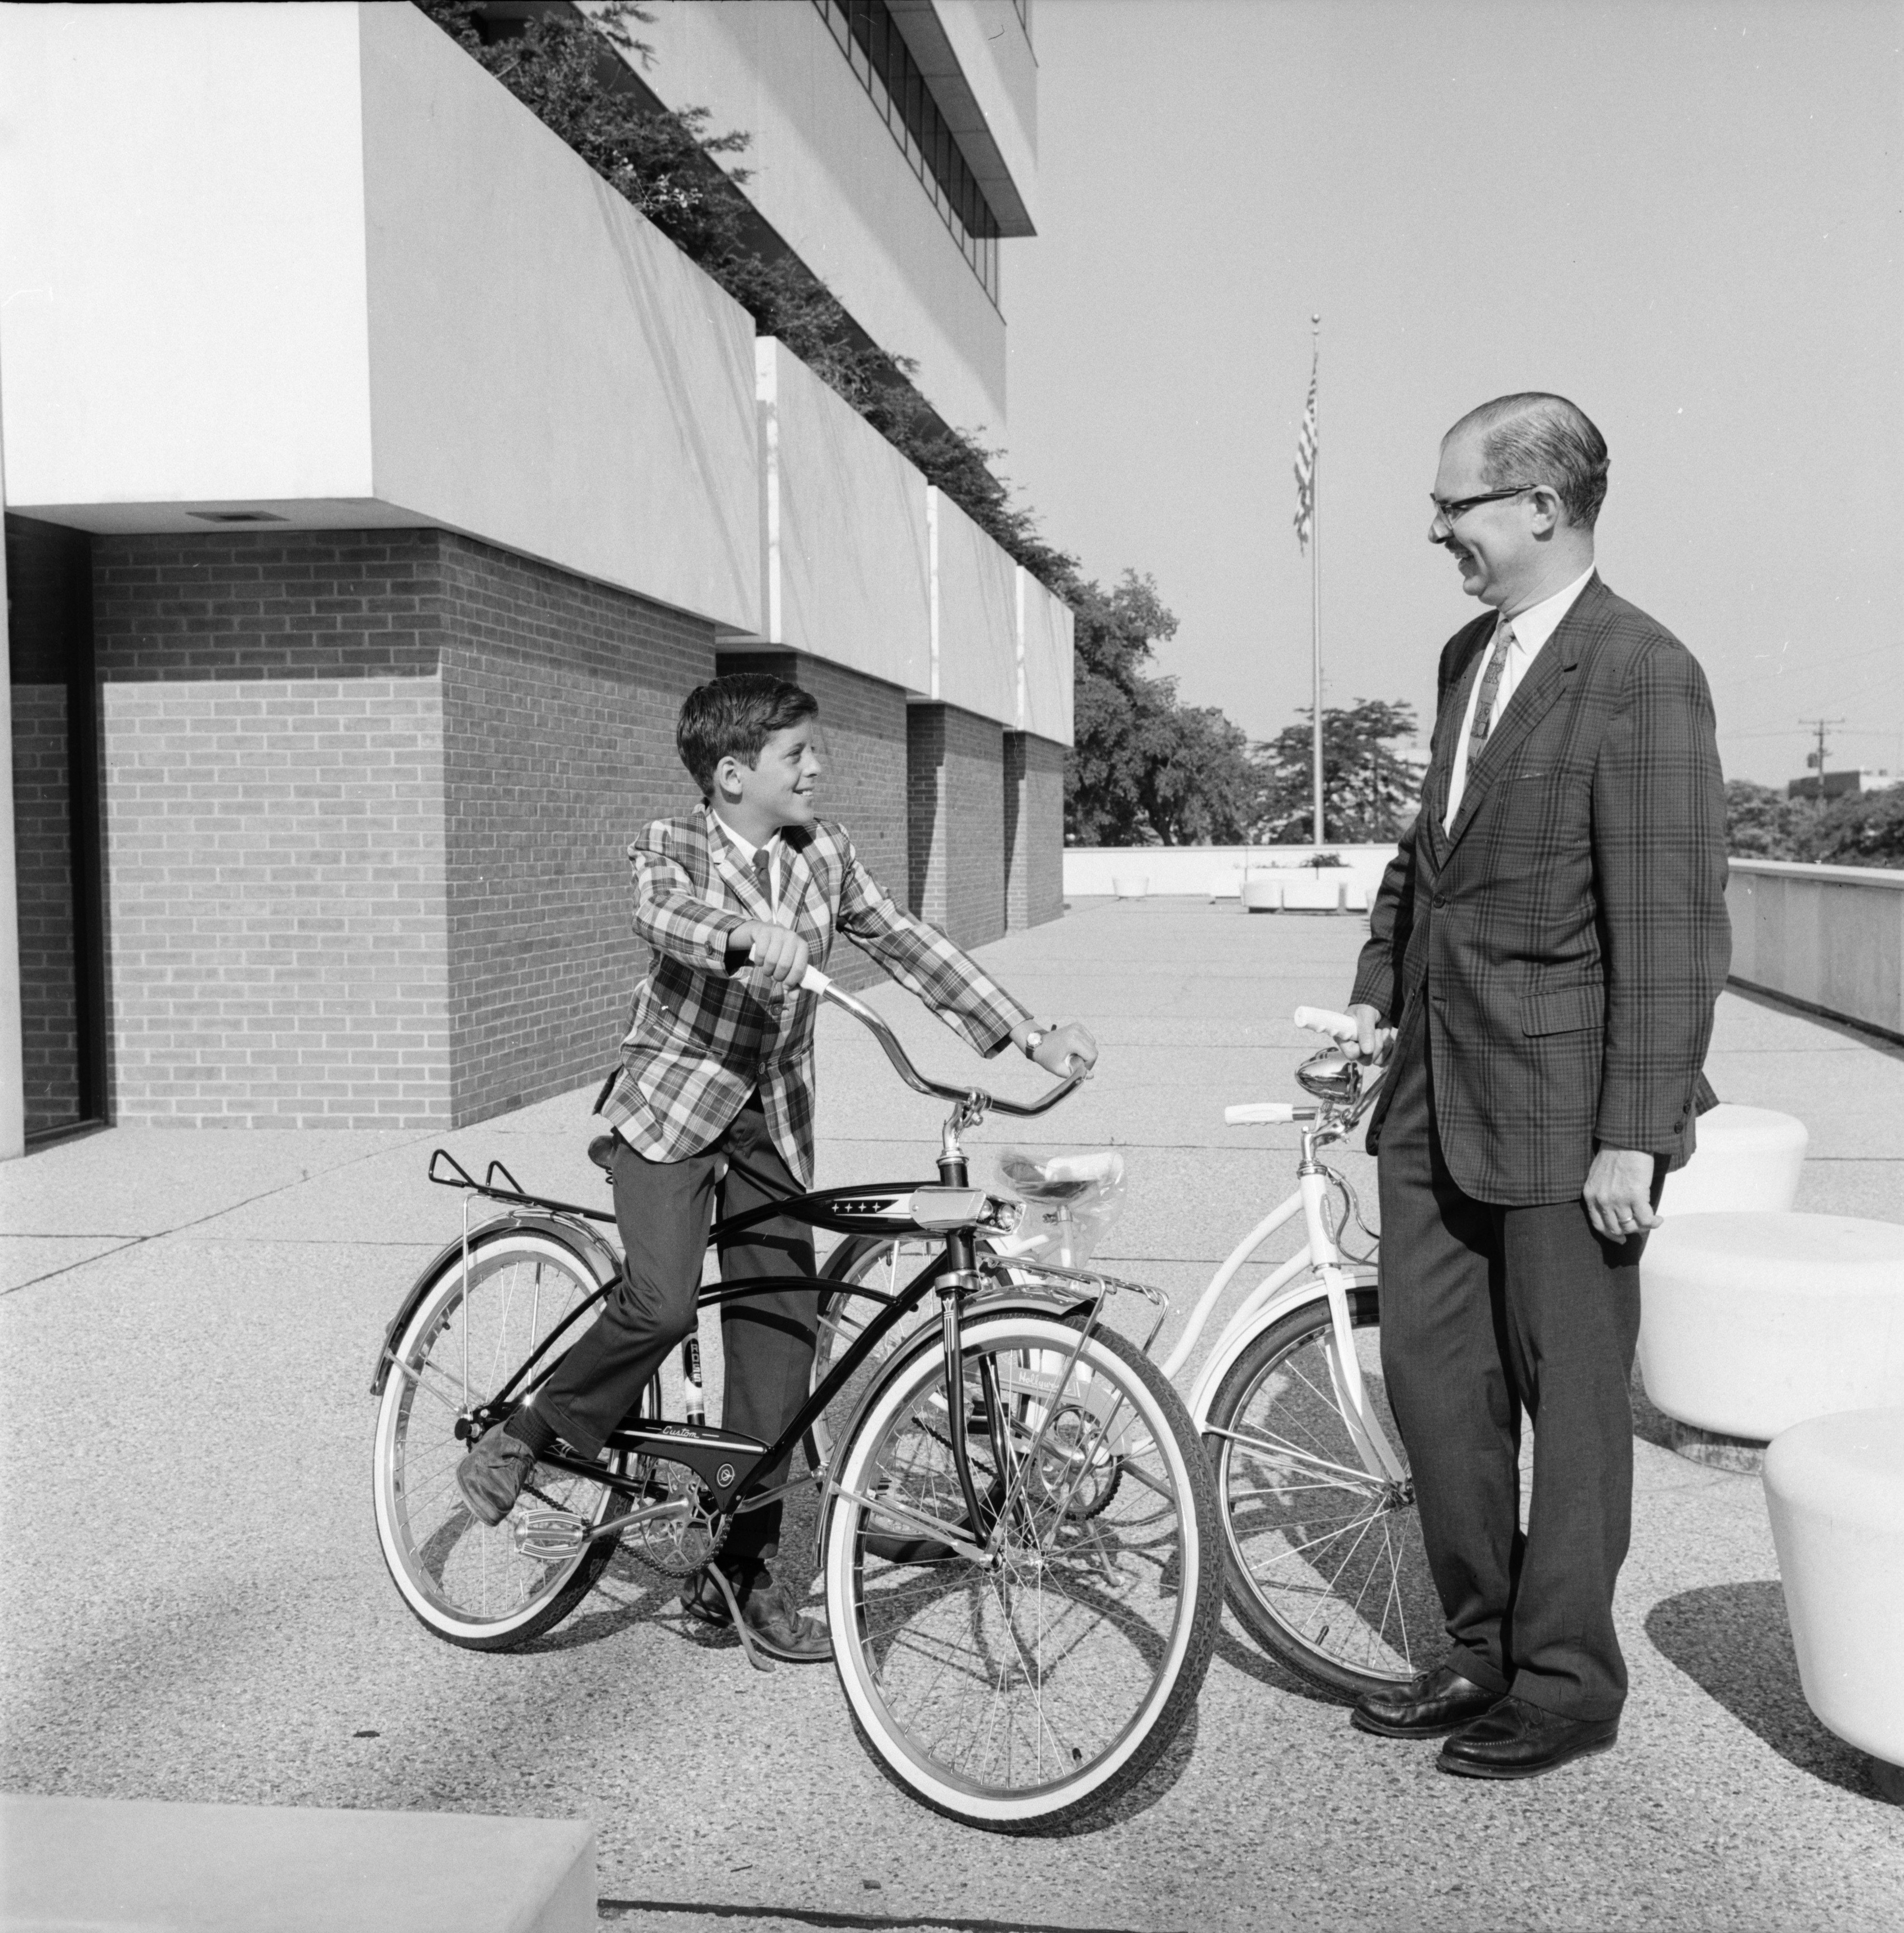 Tony Fransway wins bike for Safety Slogan, June 1967 image